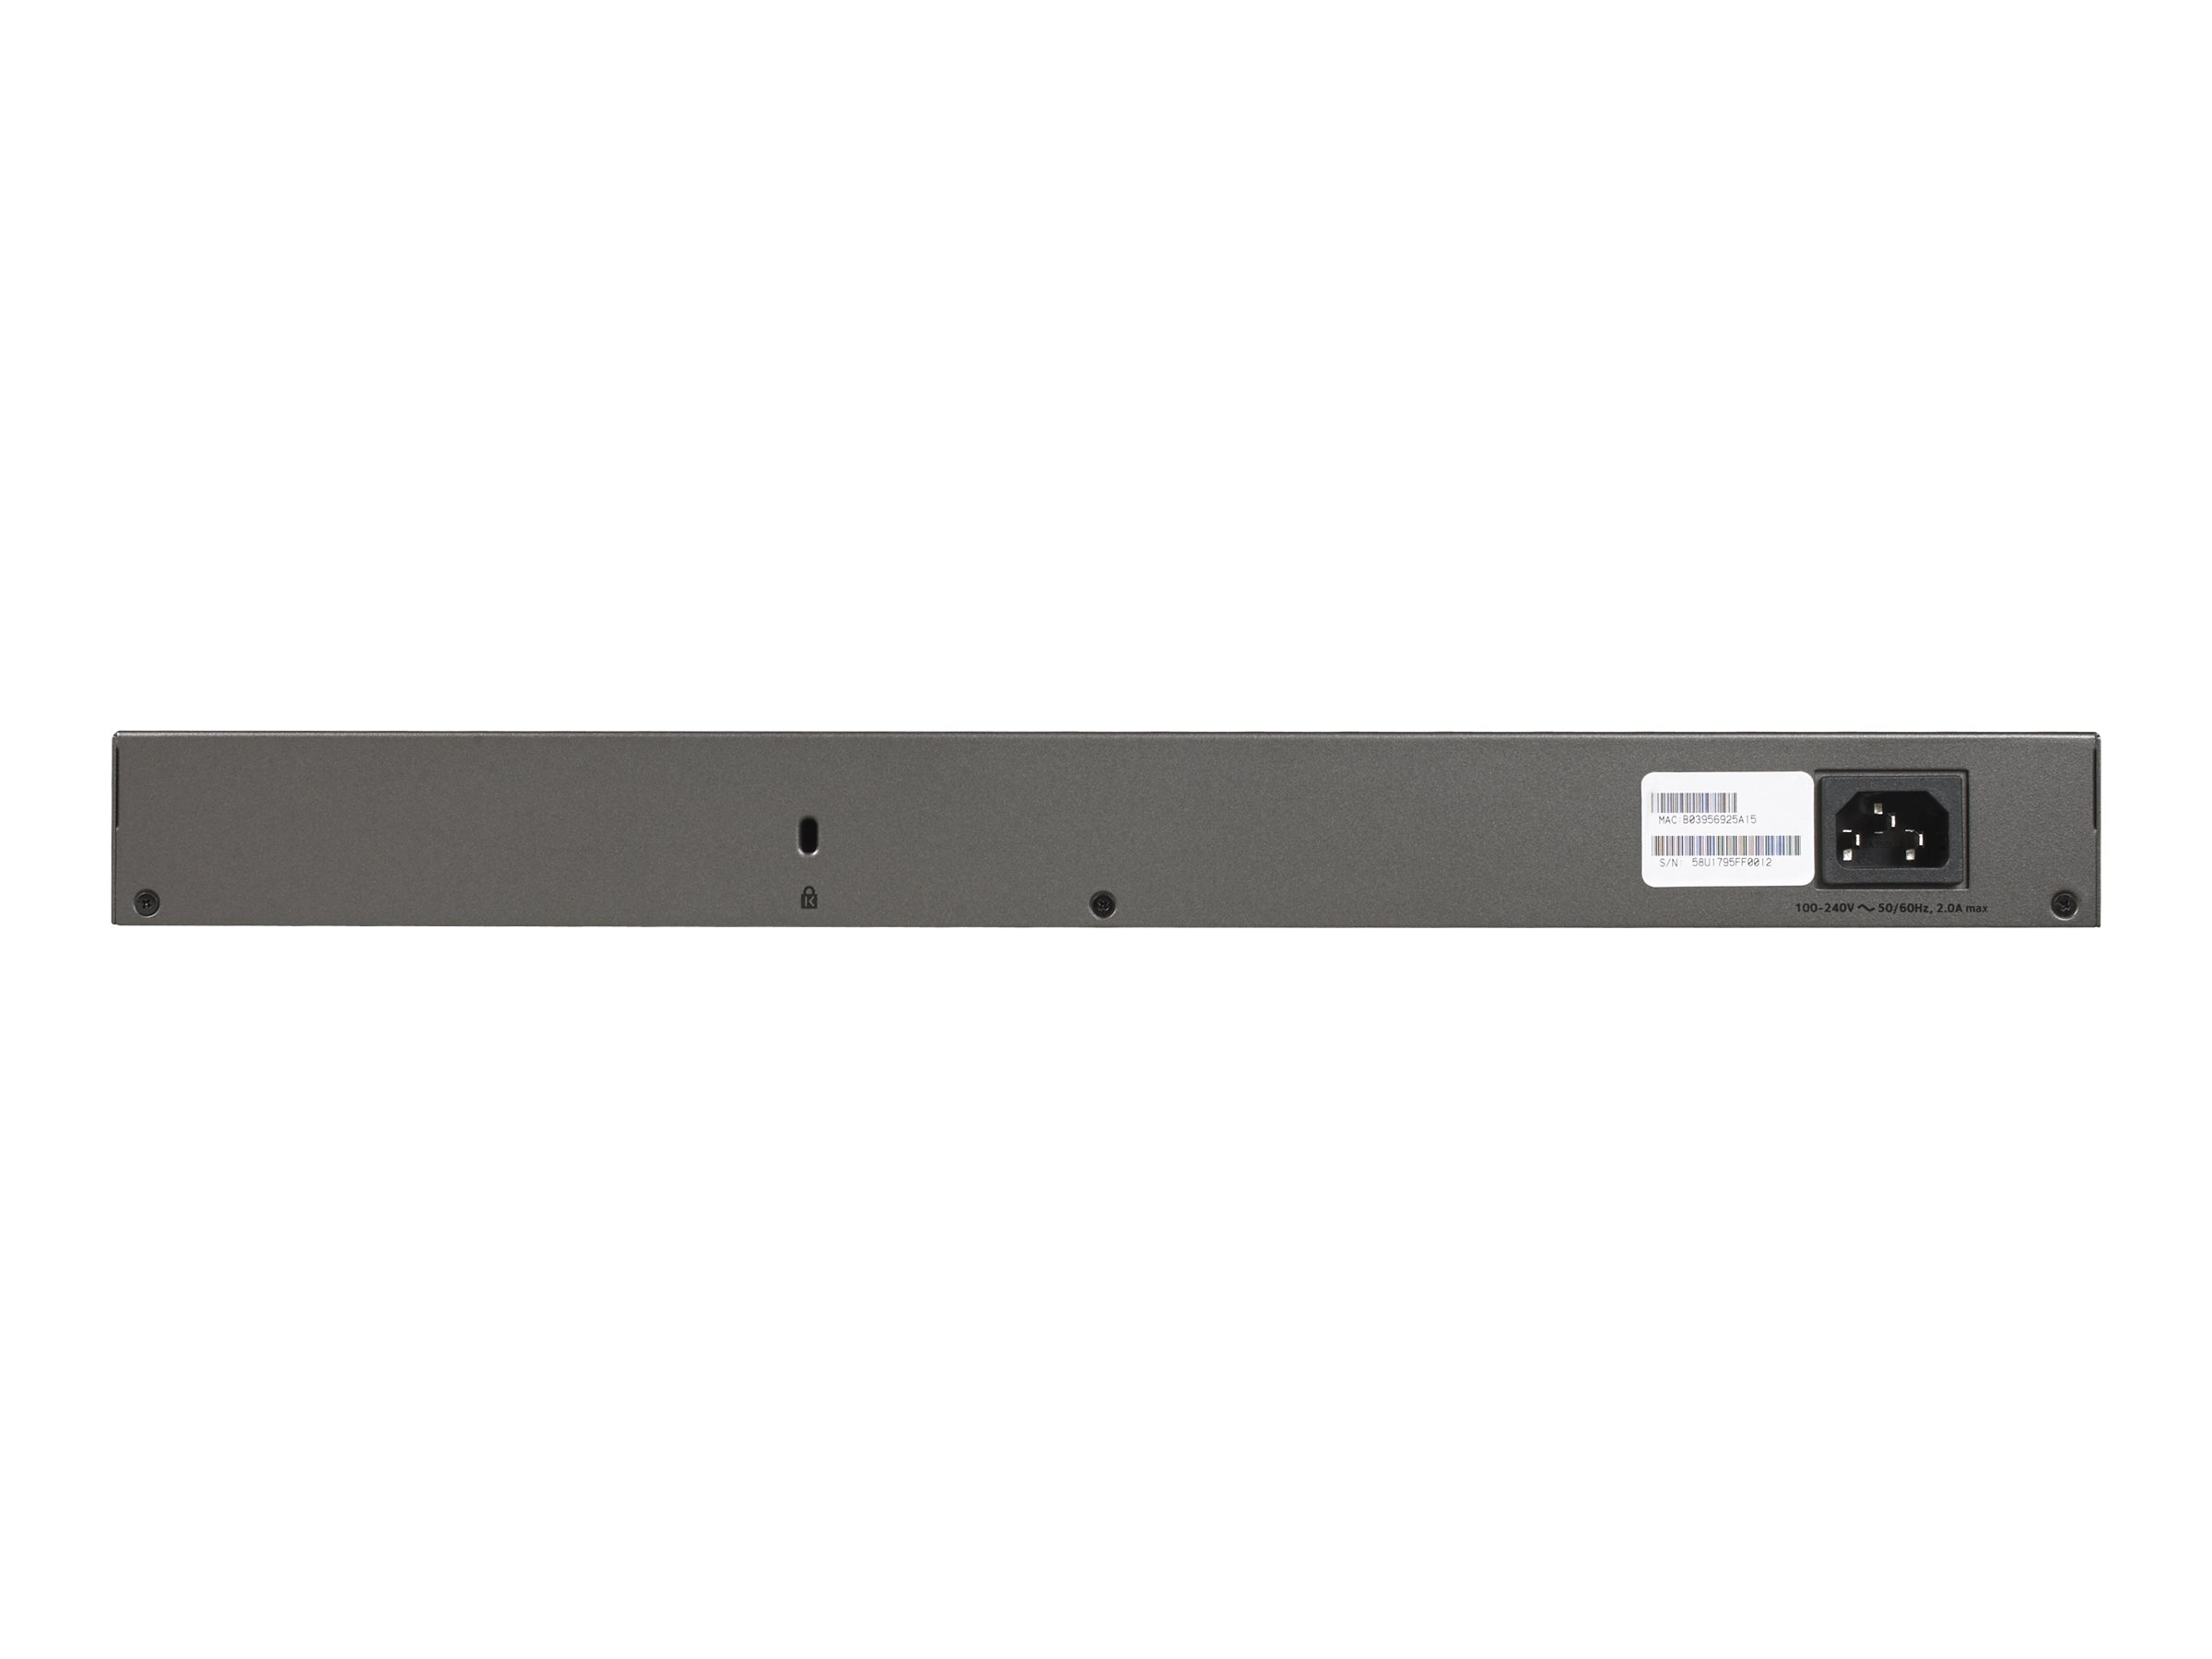 NETGEAR Plus XS724EM - switch - 24 ports - managed - rack-mountable